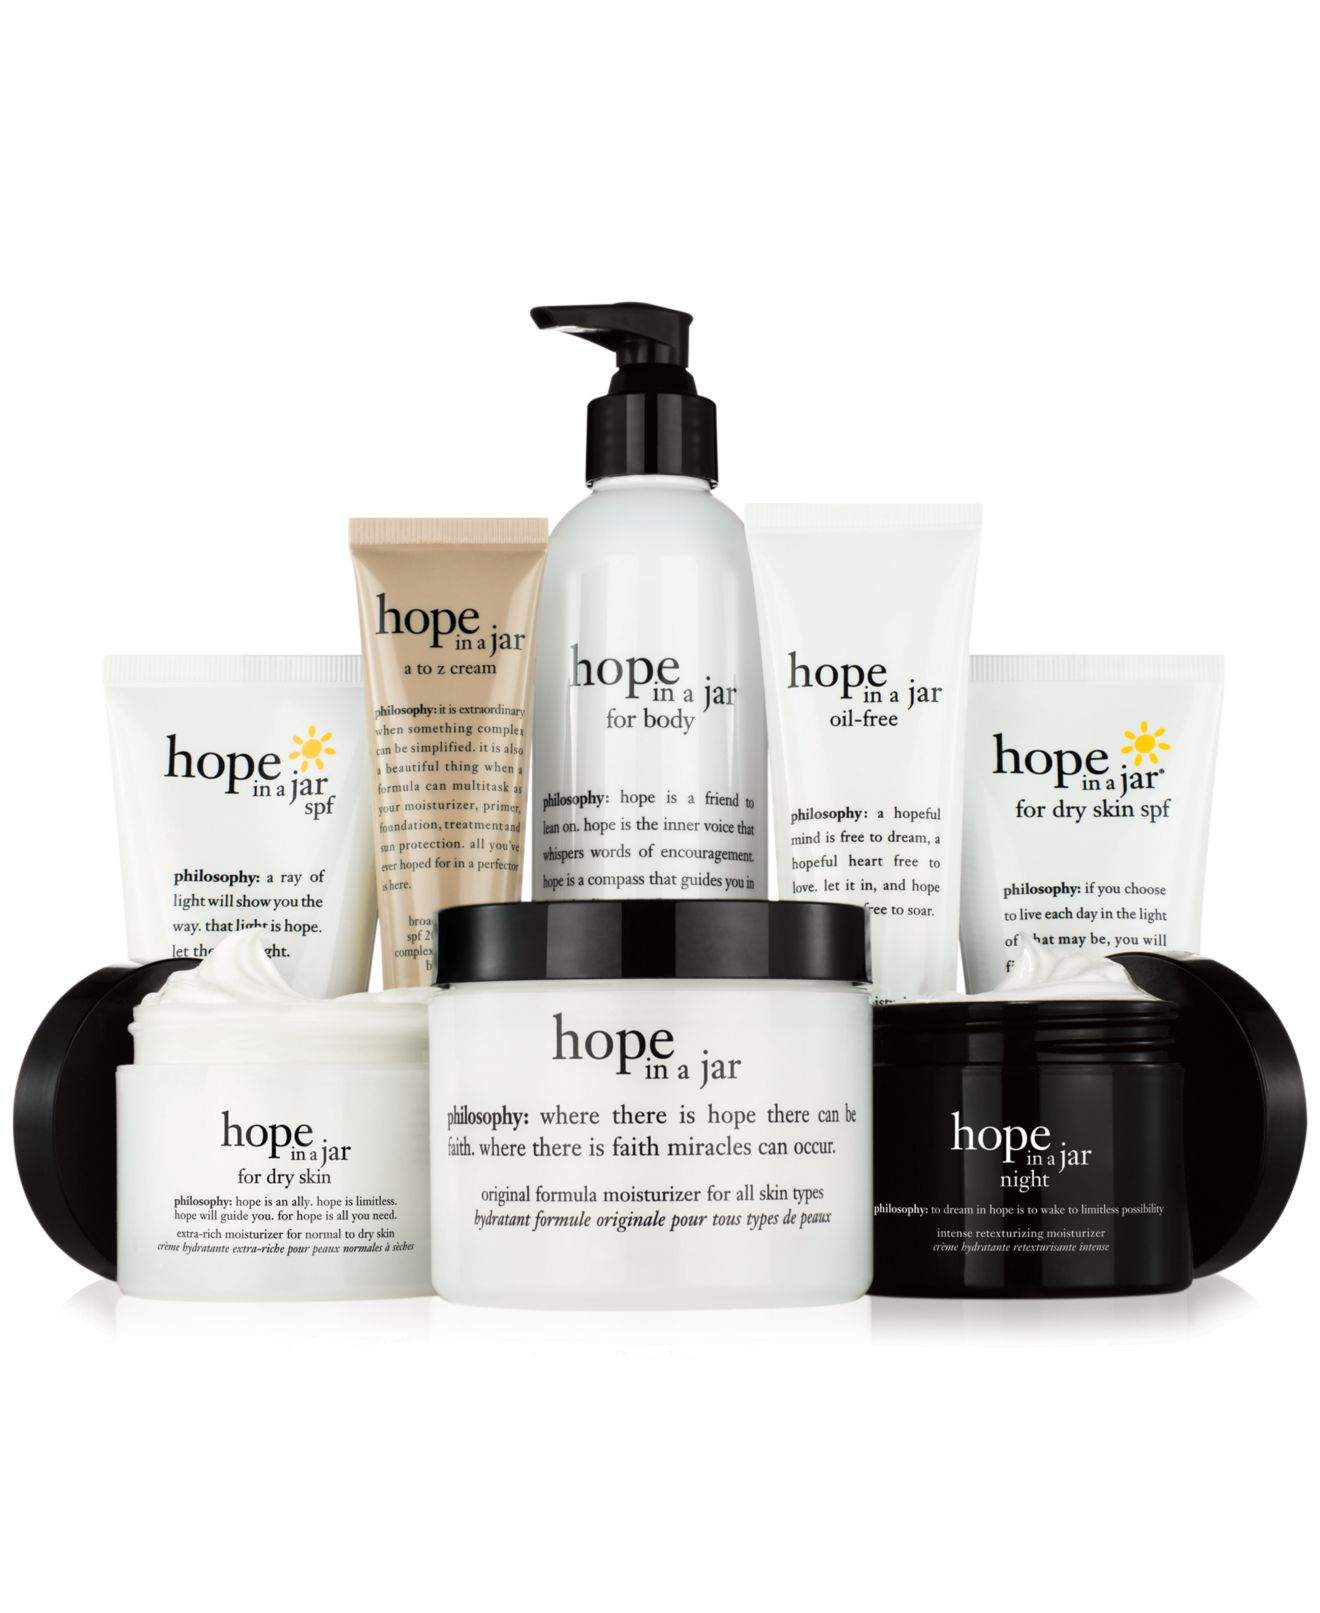 philosophy skin care makeup and fragrances macy s philosophy hope in a jar collection